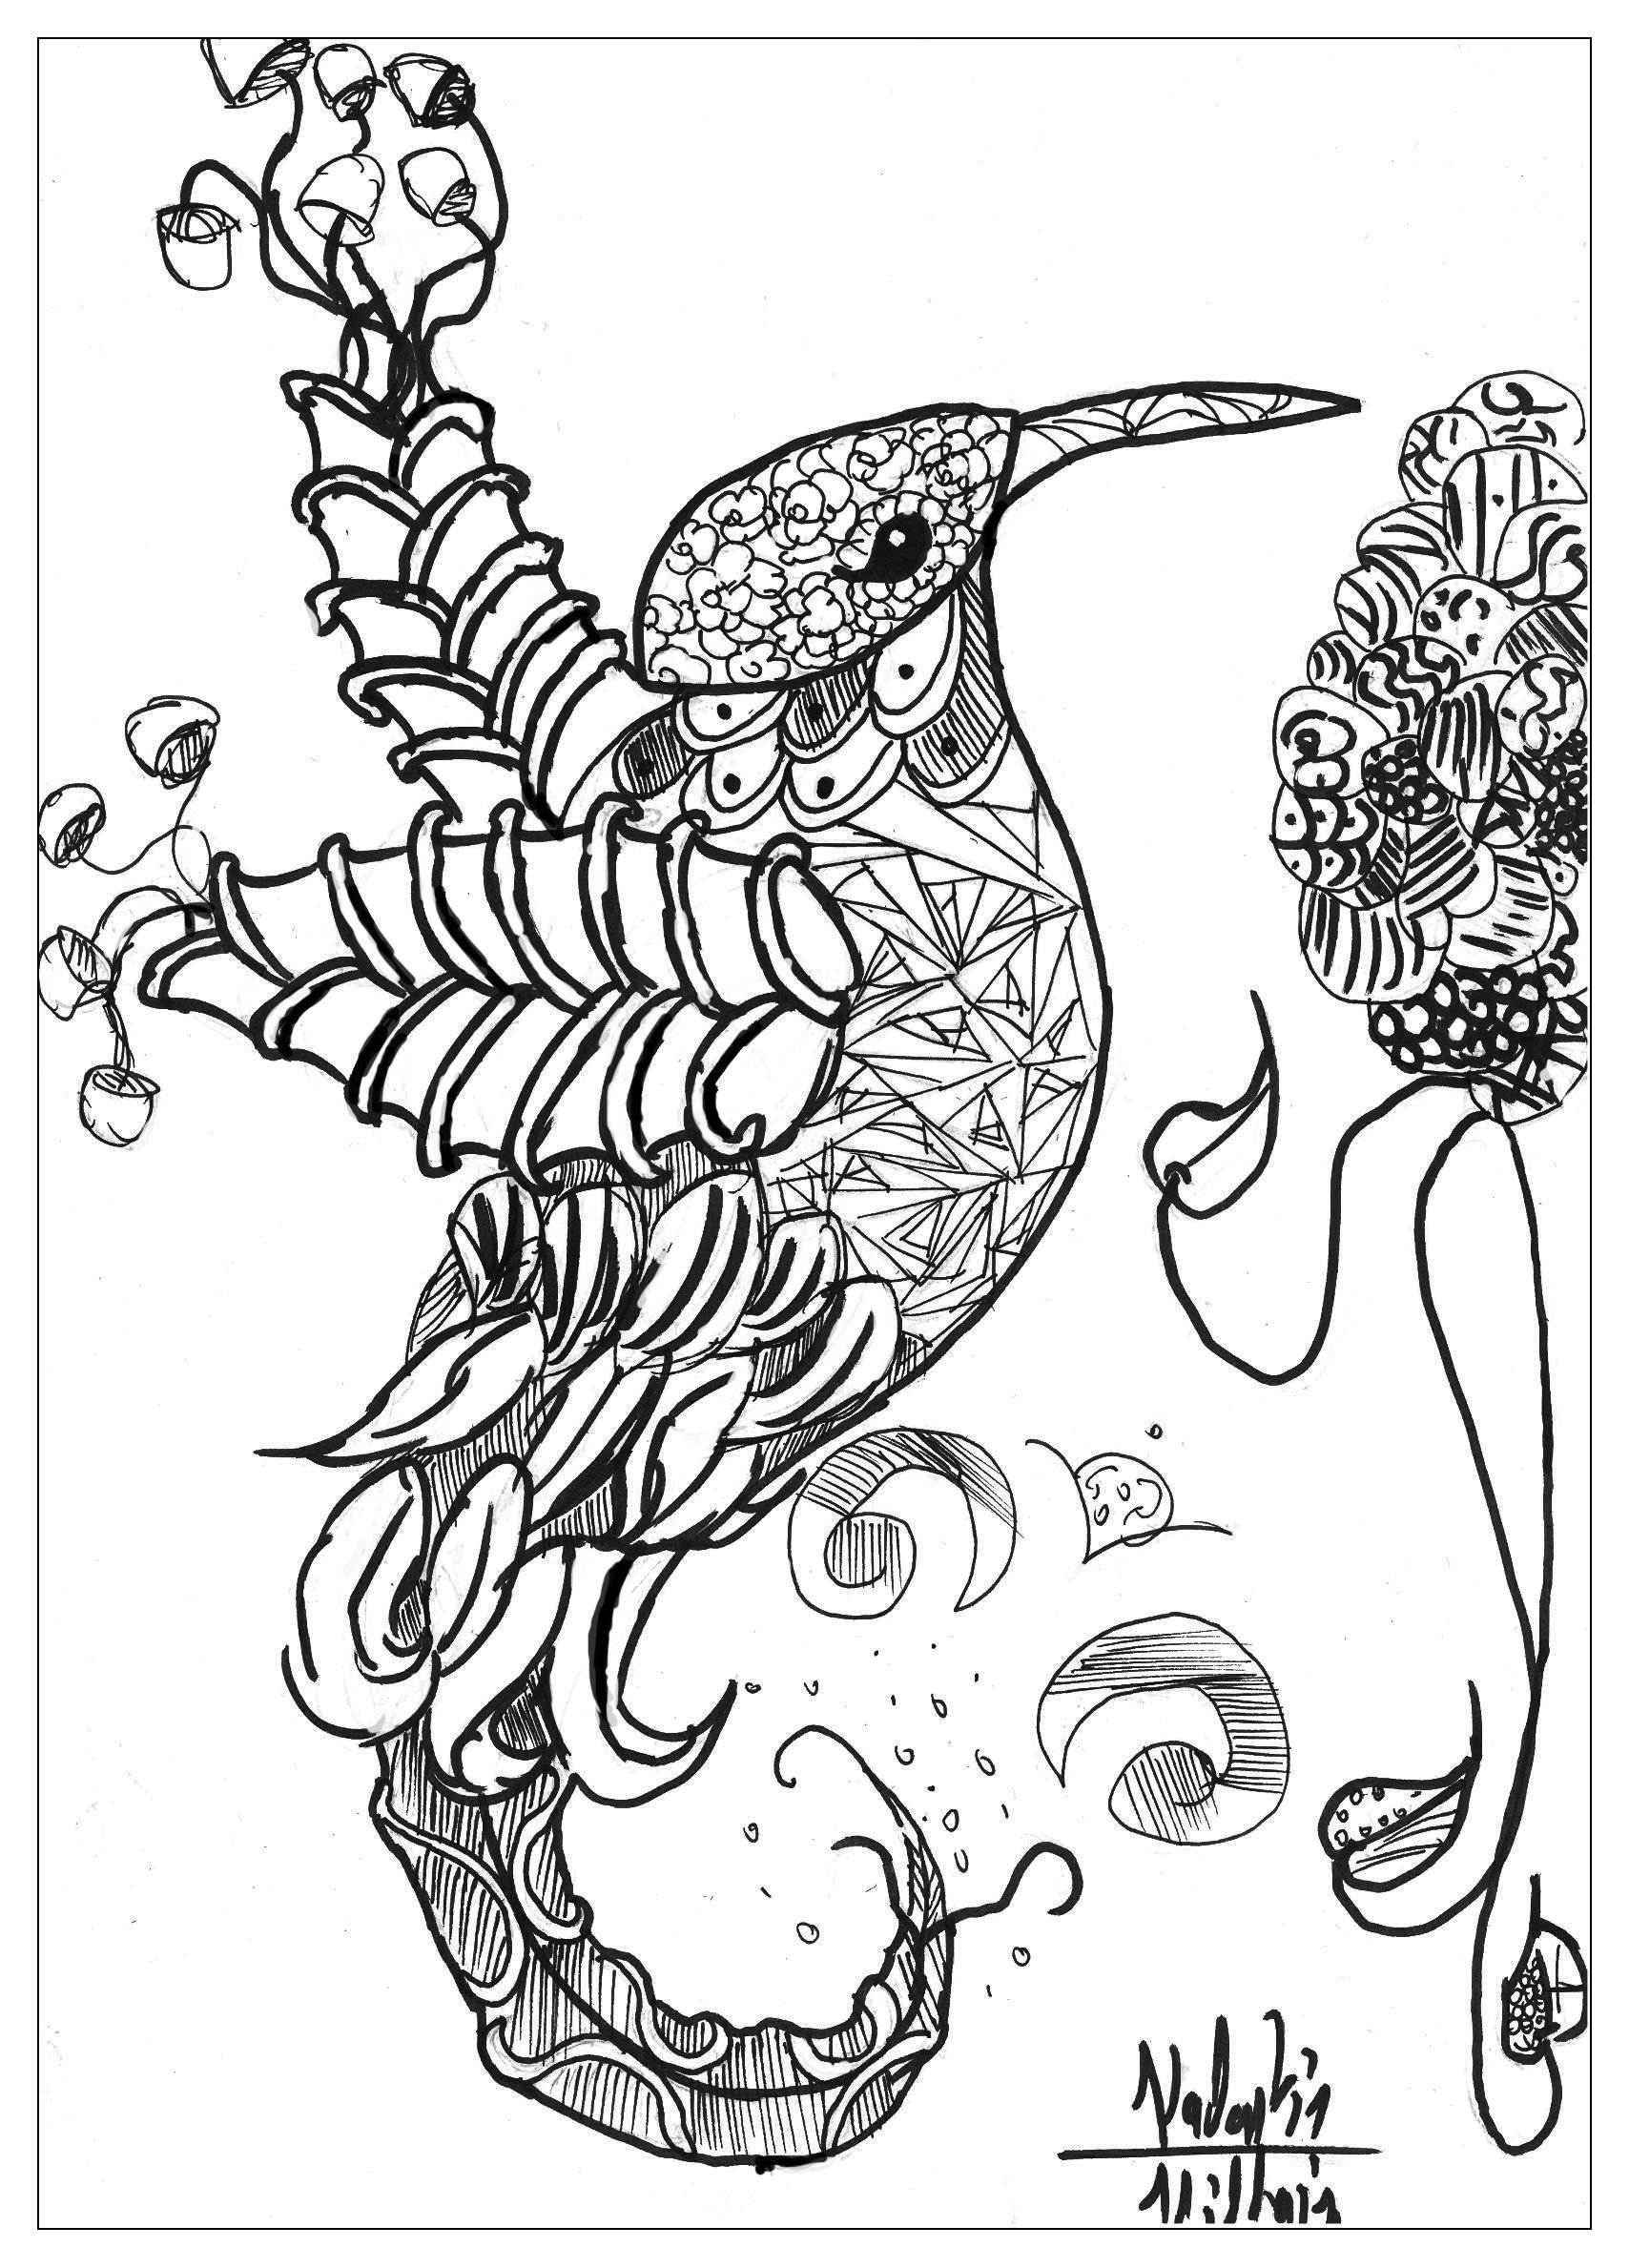 animal color sheet safari coloring pages to download and print for free color sheet animal